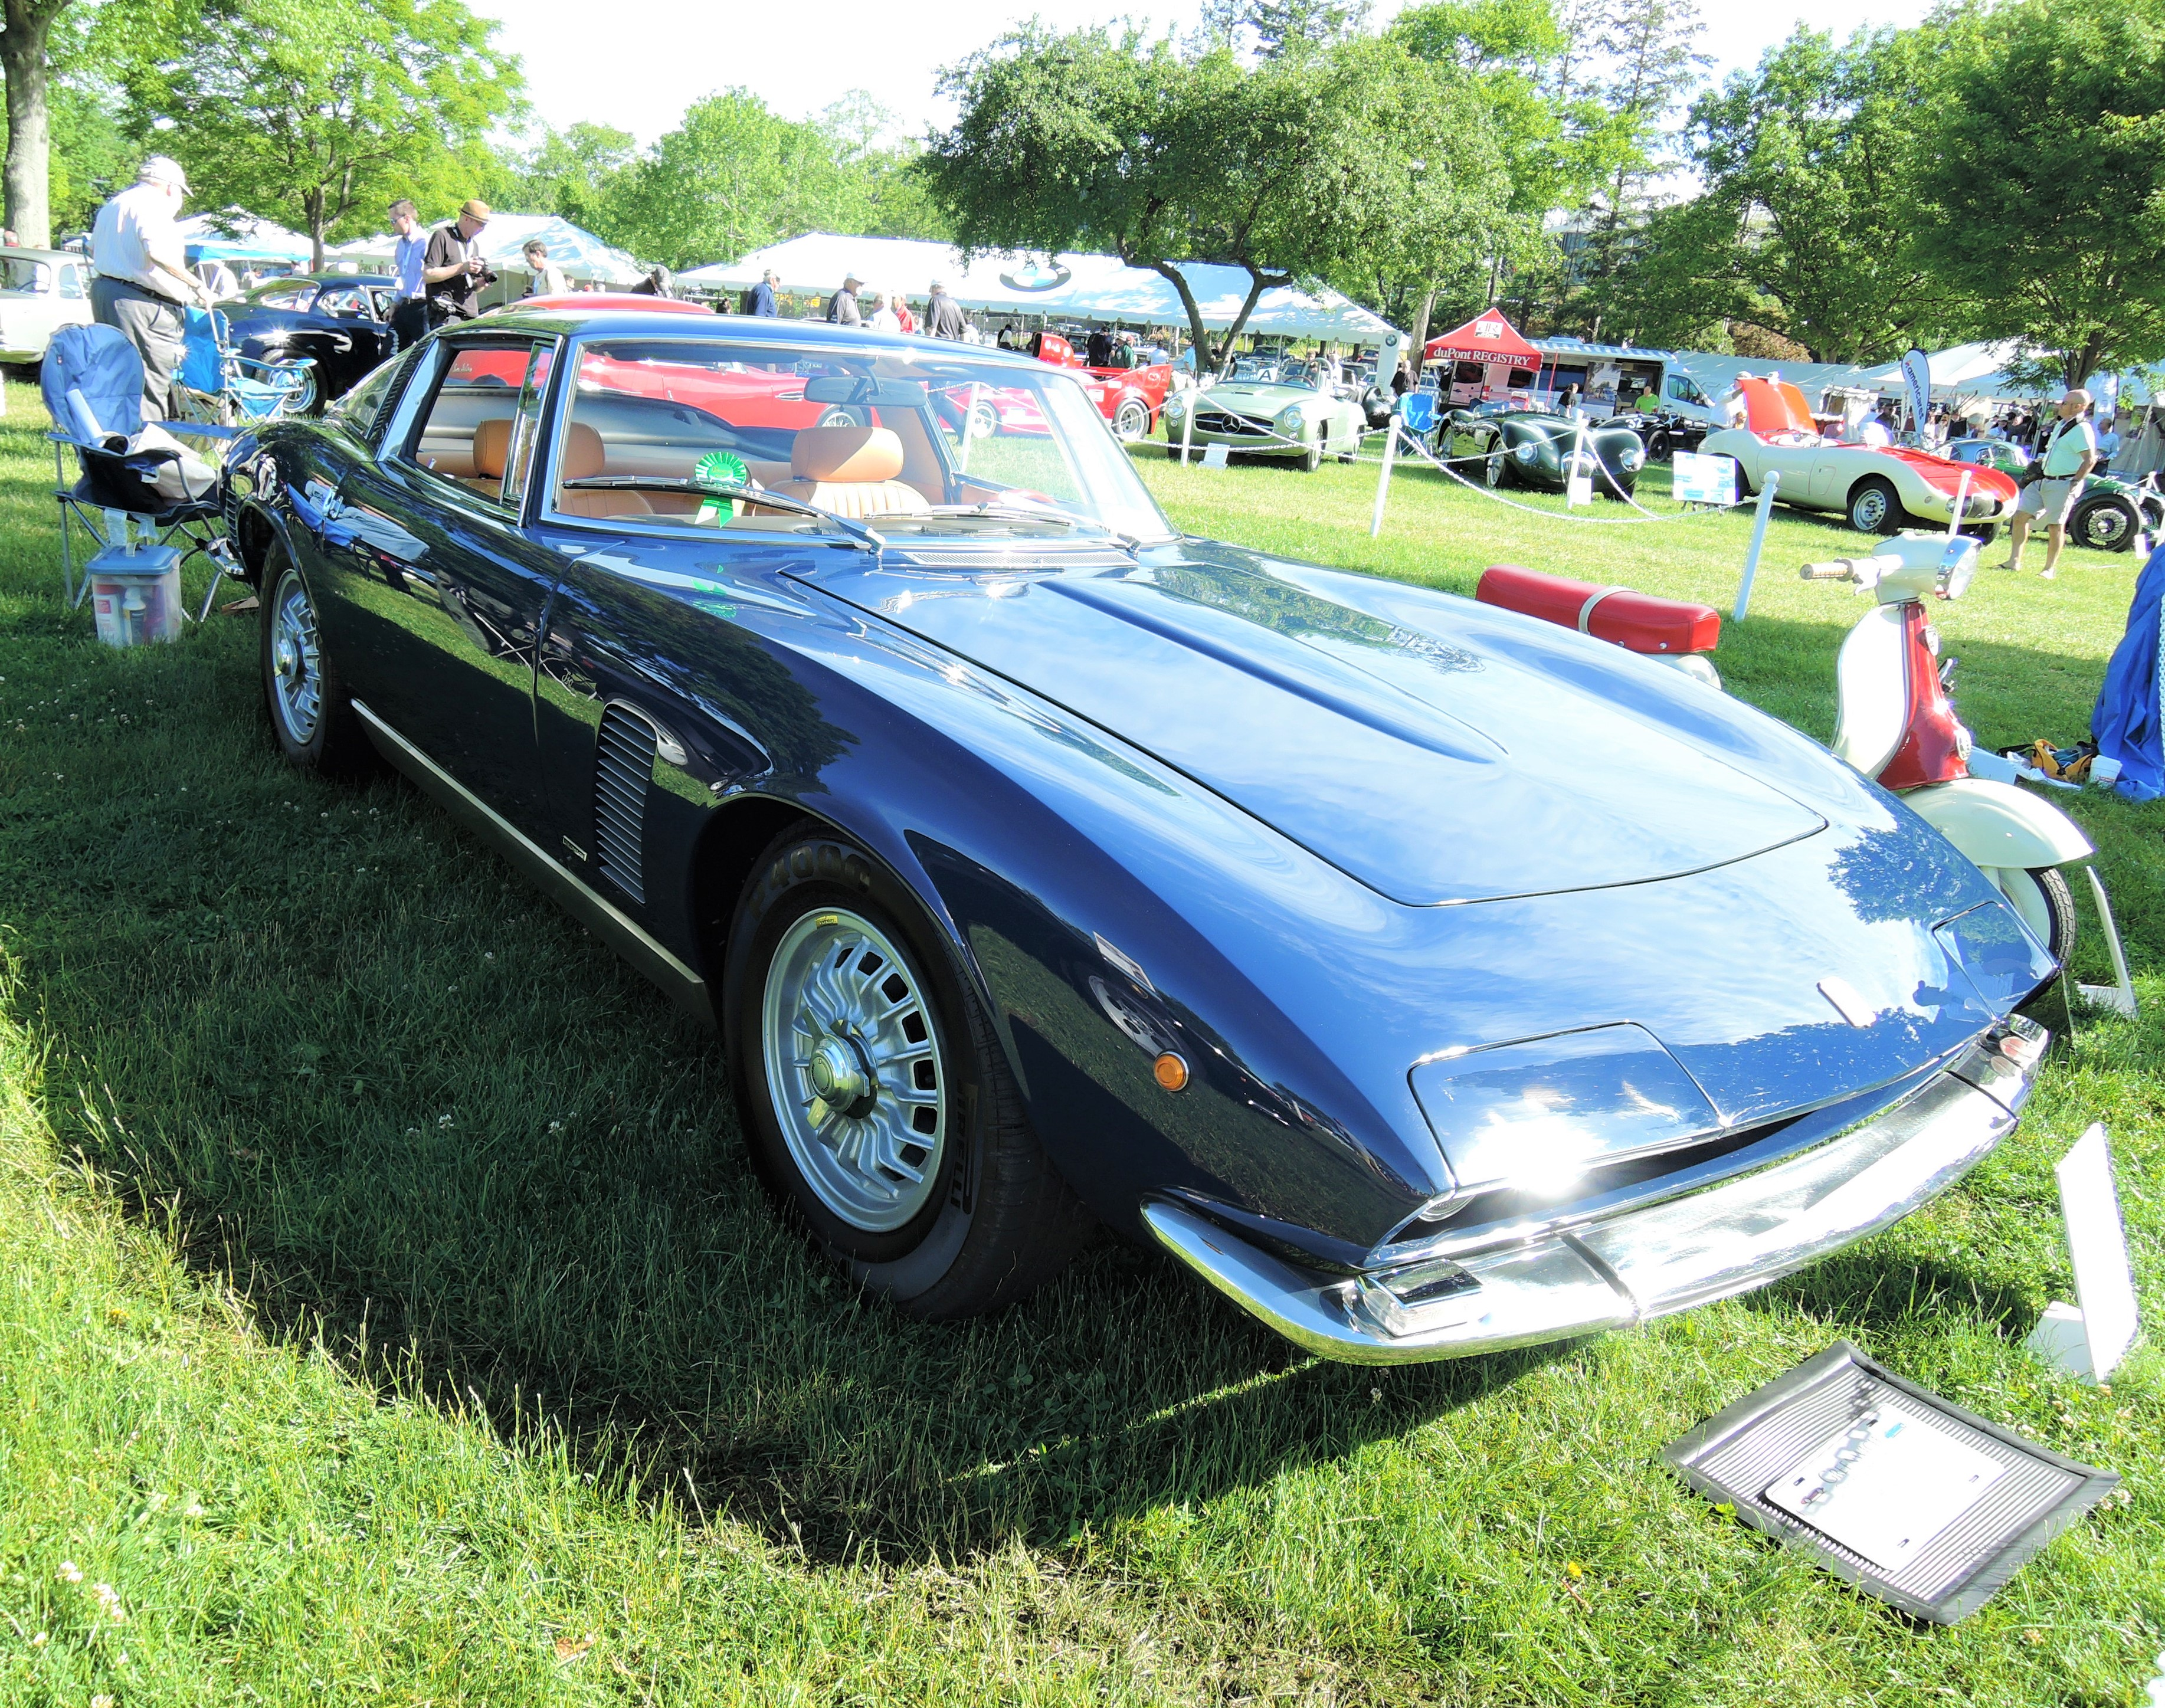 blue 1971 Iso Grifo Coupe - Greenwich Concours d'Elegance 2017